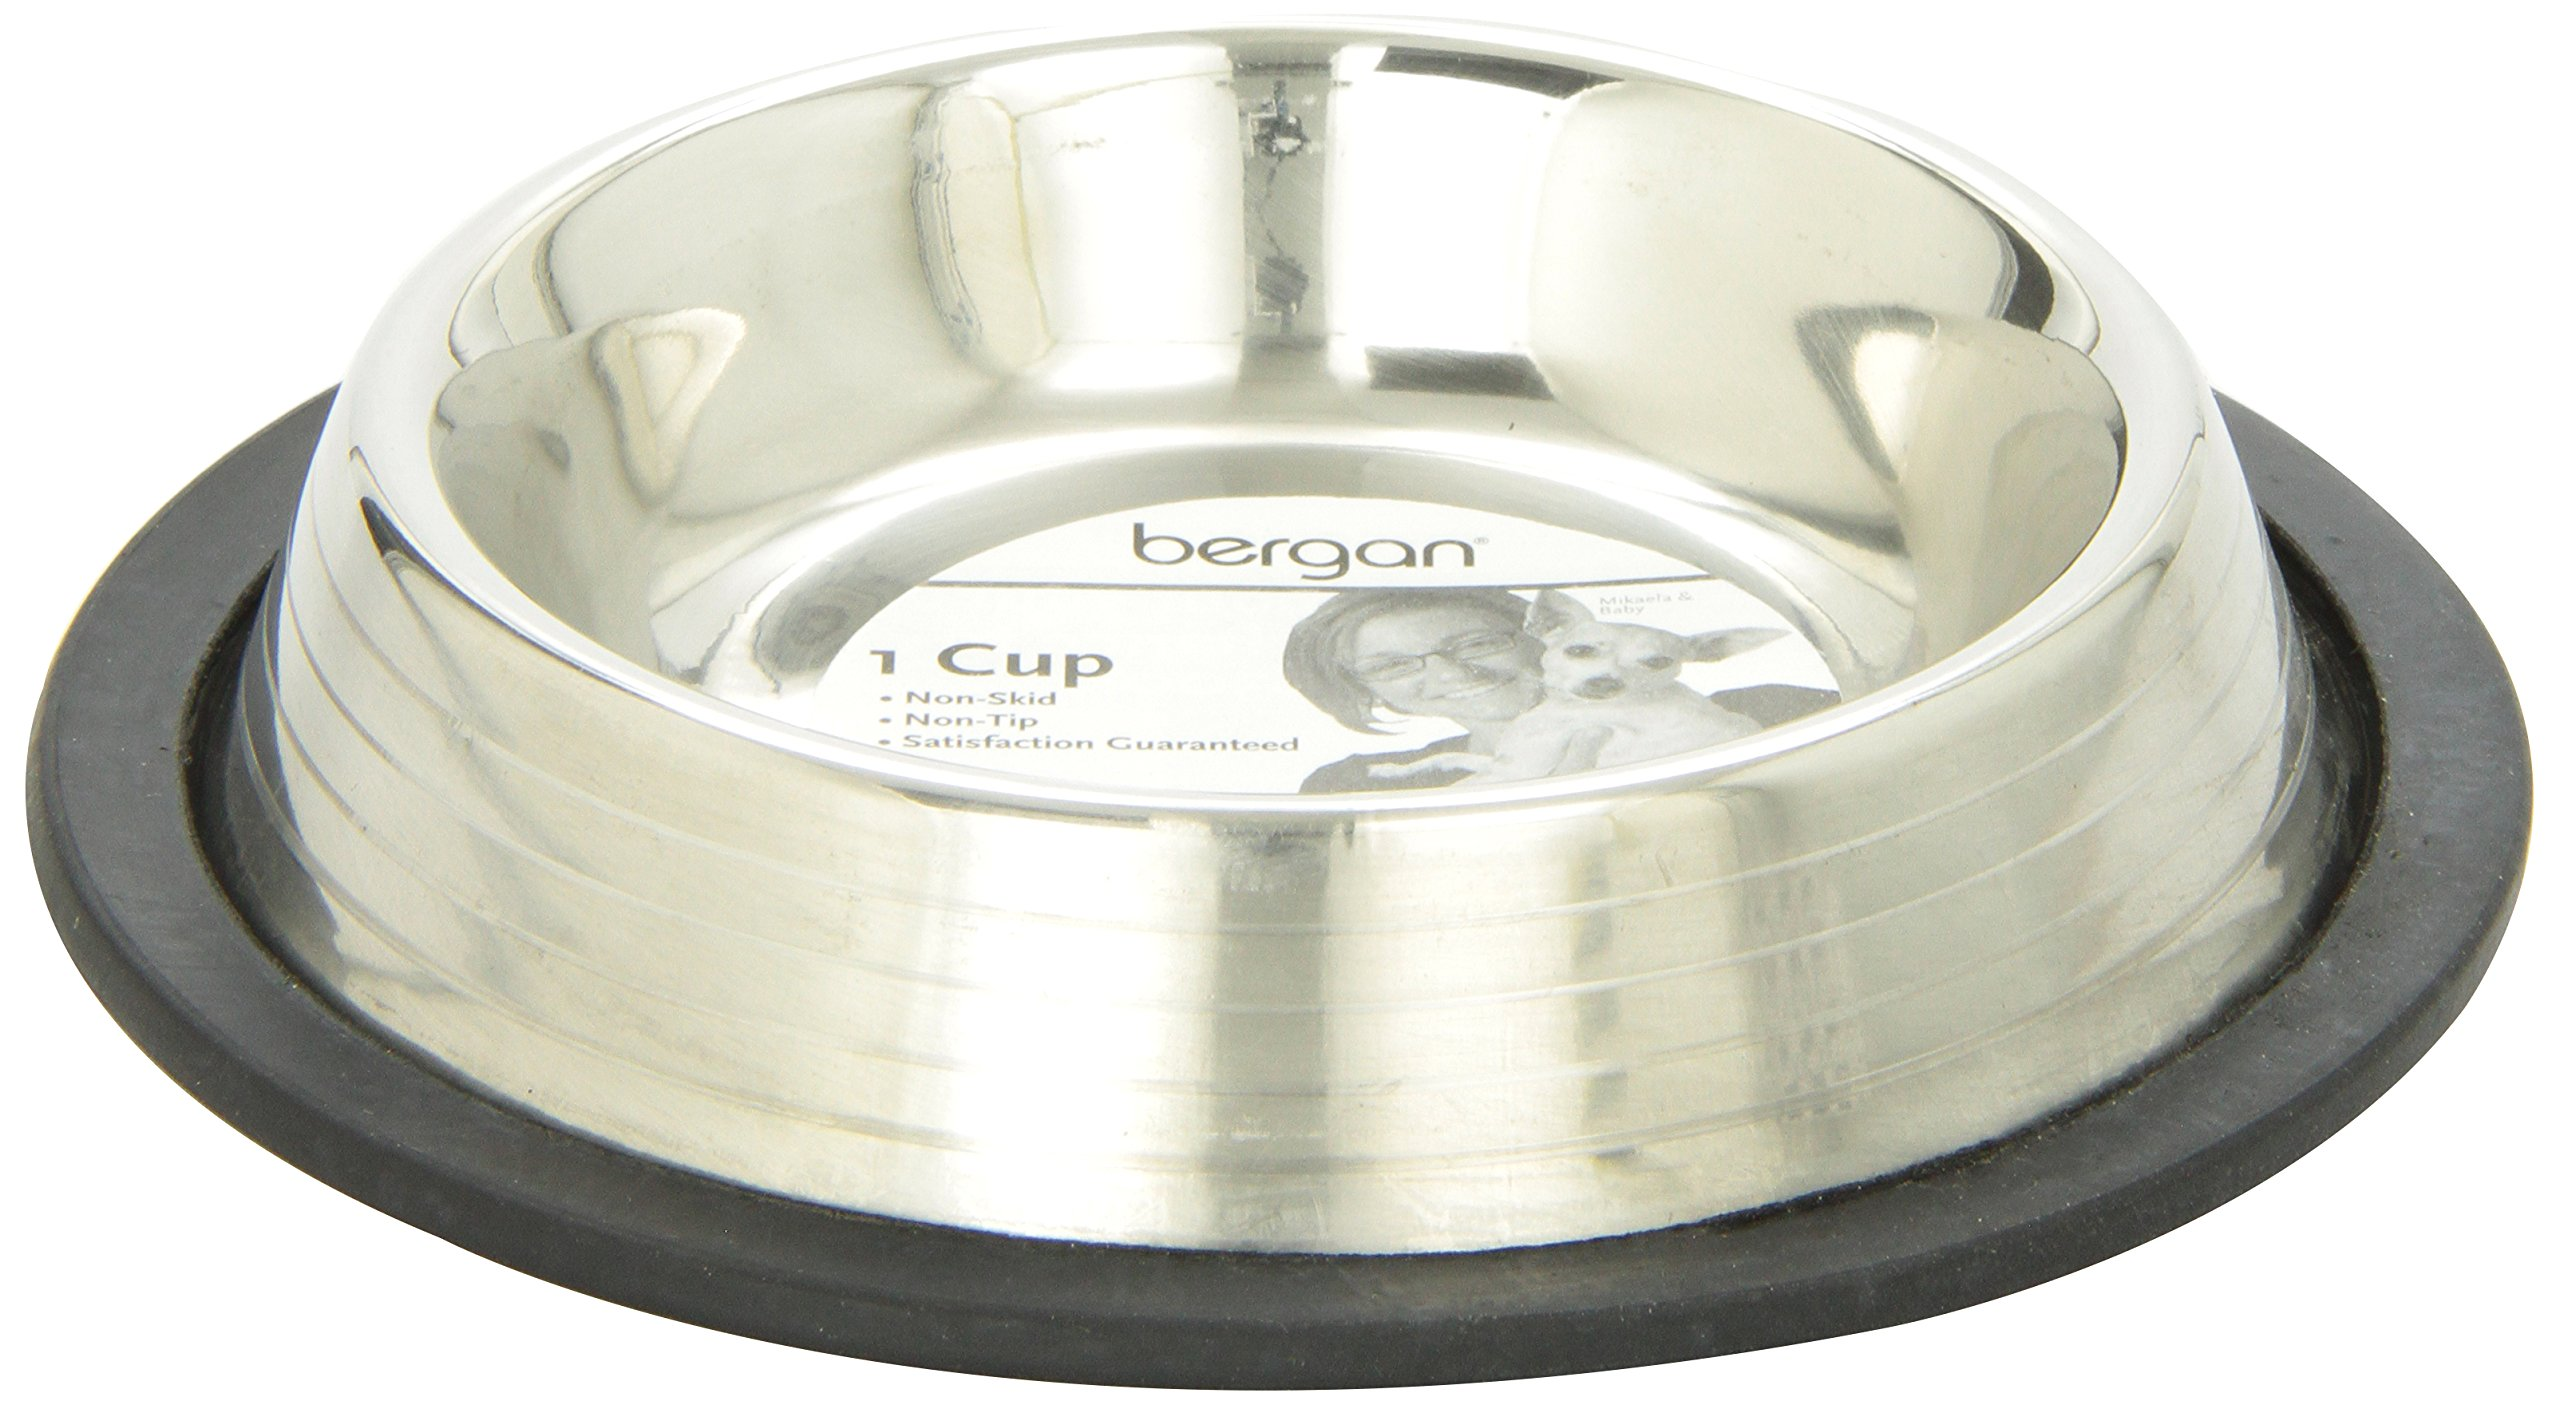 Bergan Stainless Steel Non-Skid/Non-Tip Pet Bowl with Ridges 1 Cup